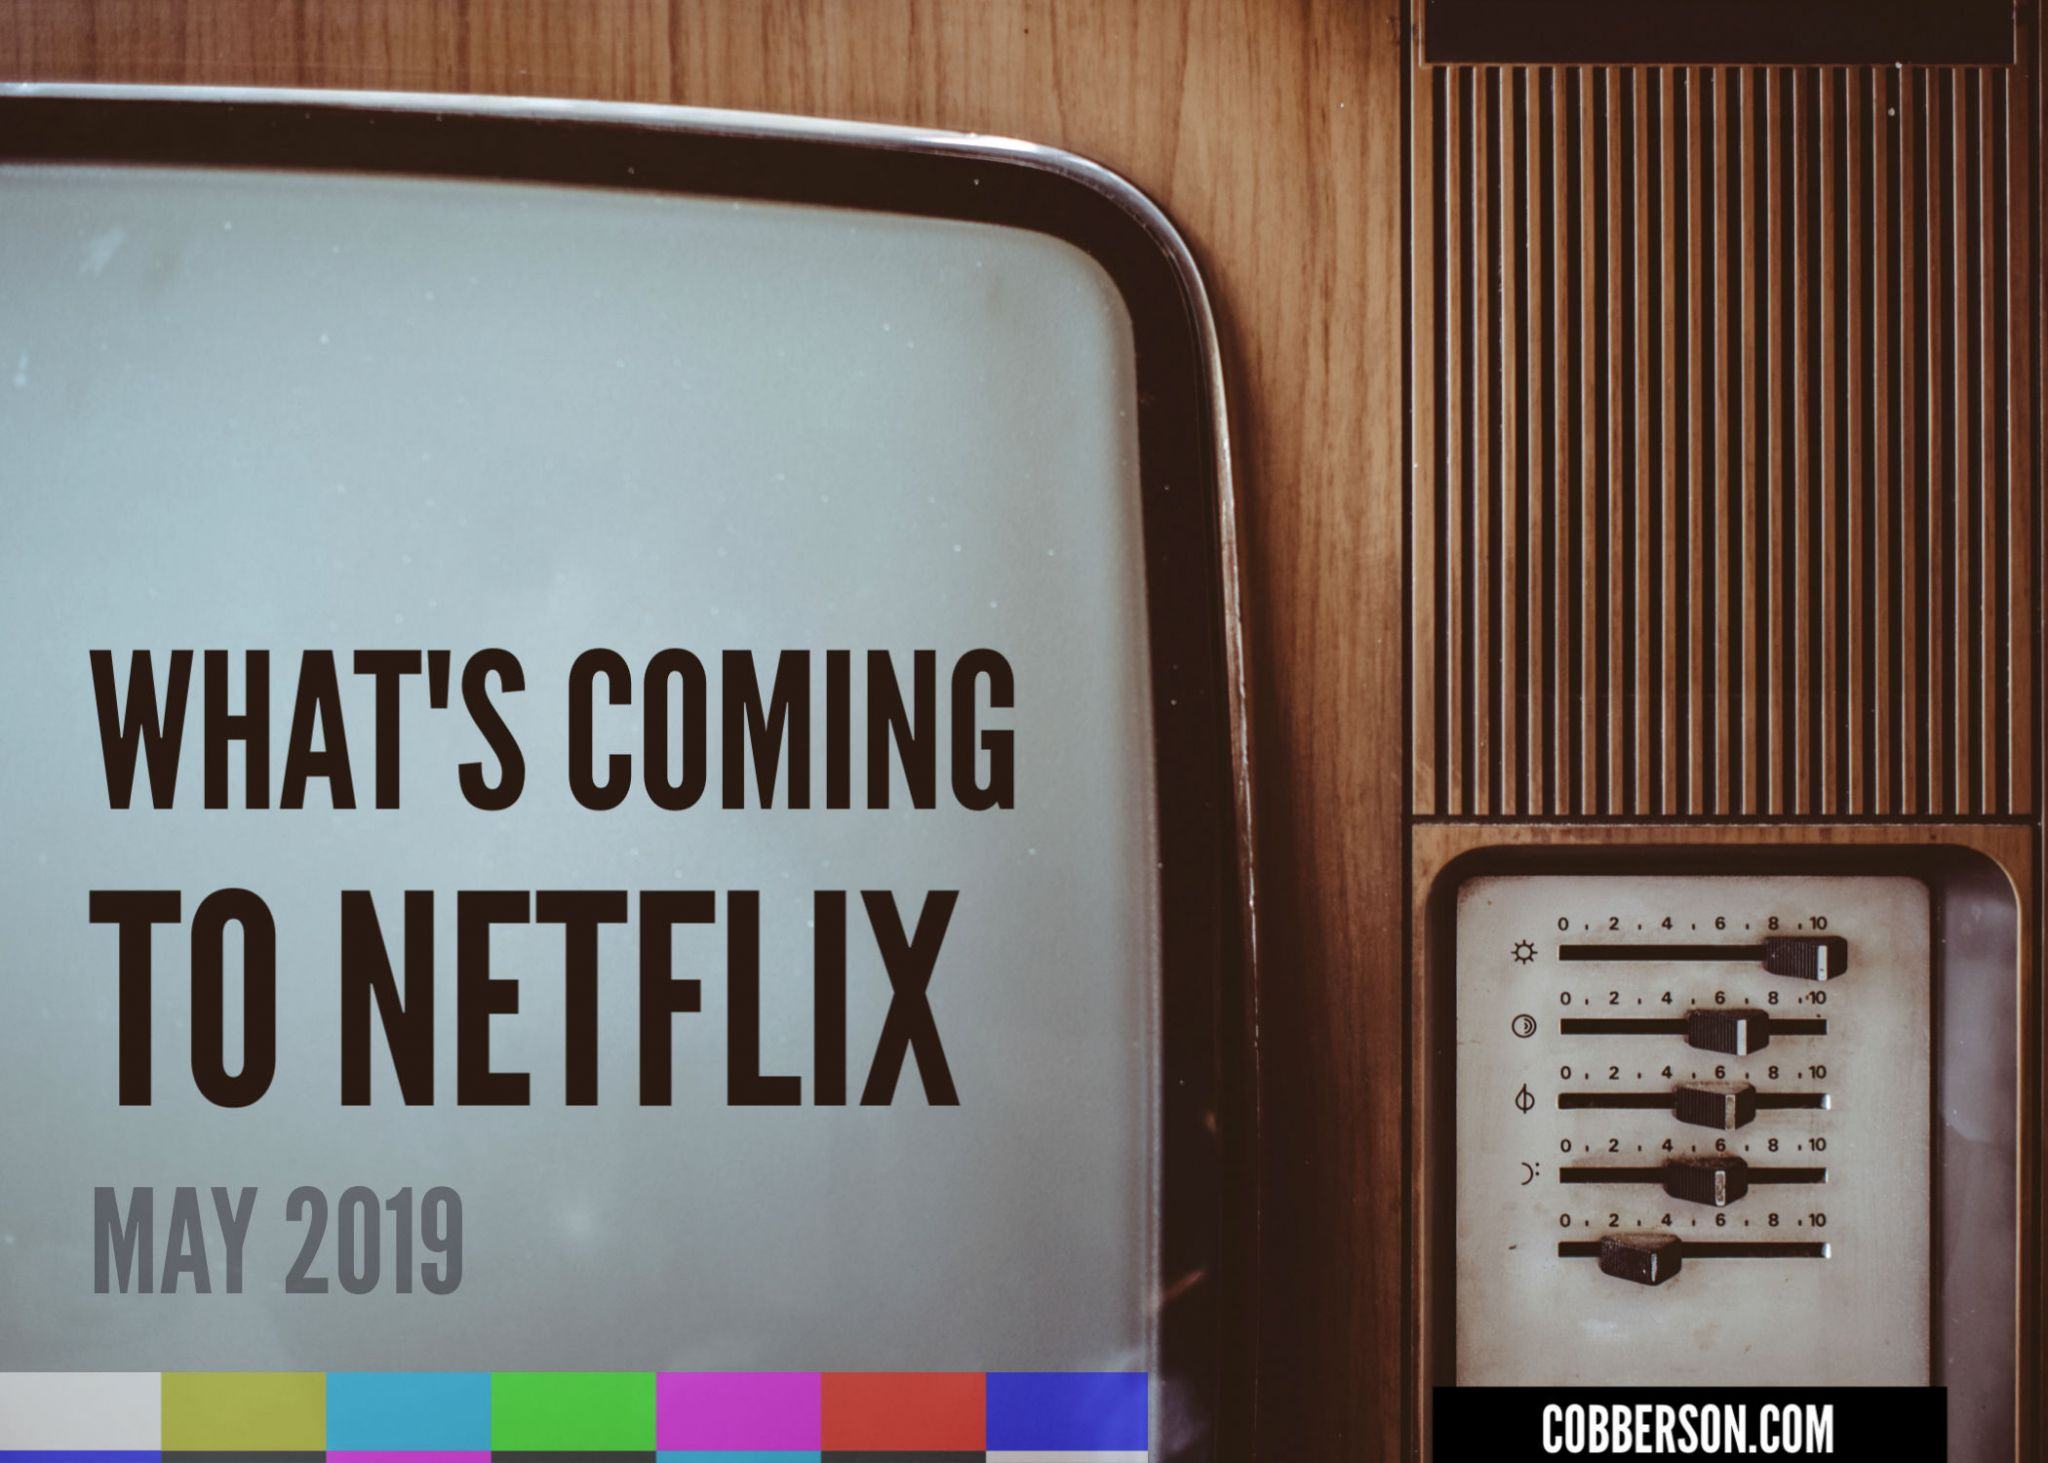 whats coming to netflix may 2019 cobberson